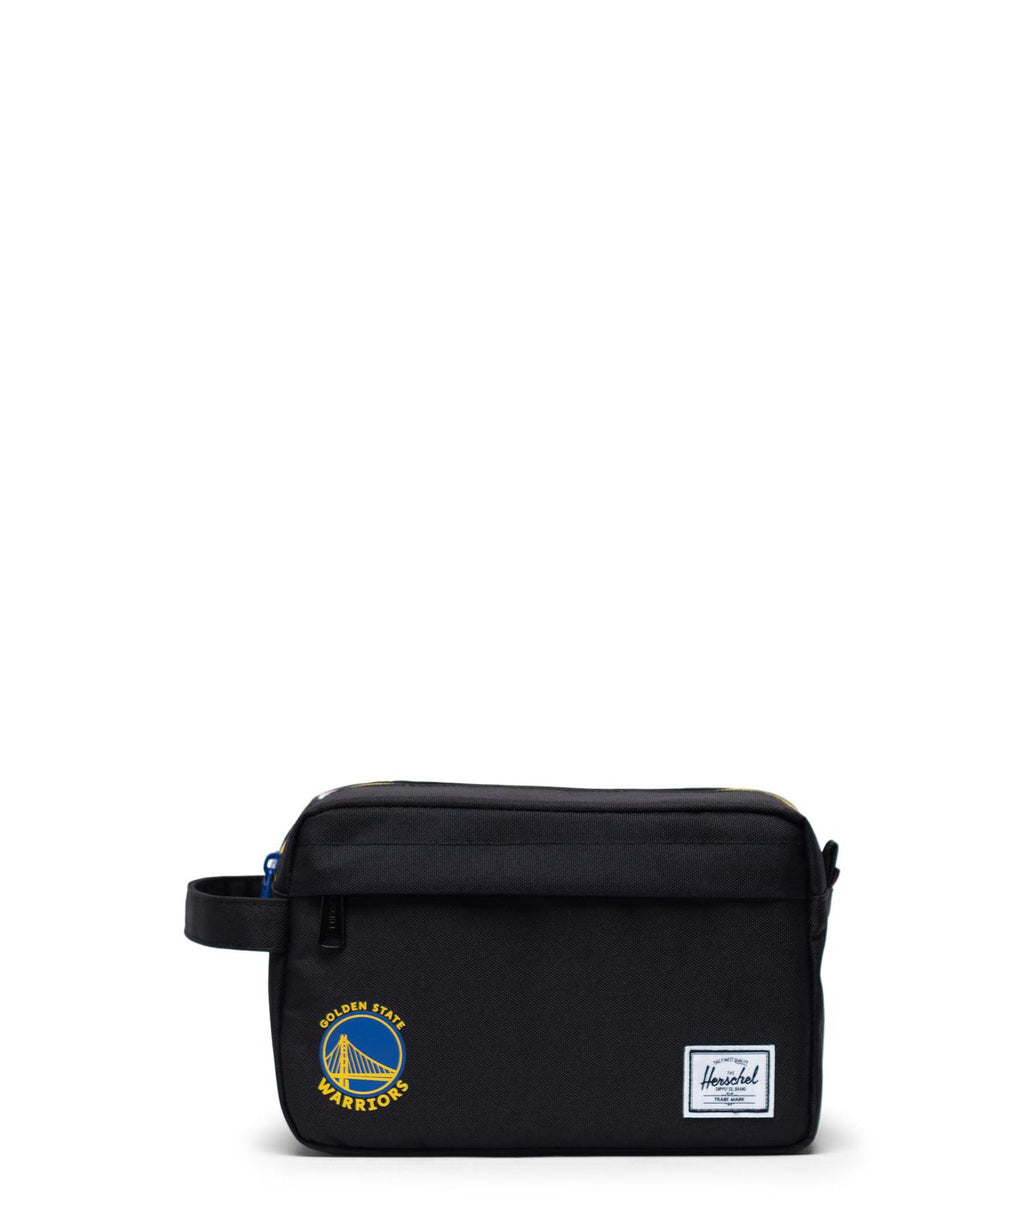 Golden State Warriors Chapter Organizer Bag Black/Royal/Yellow